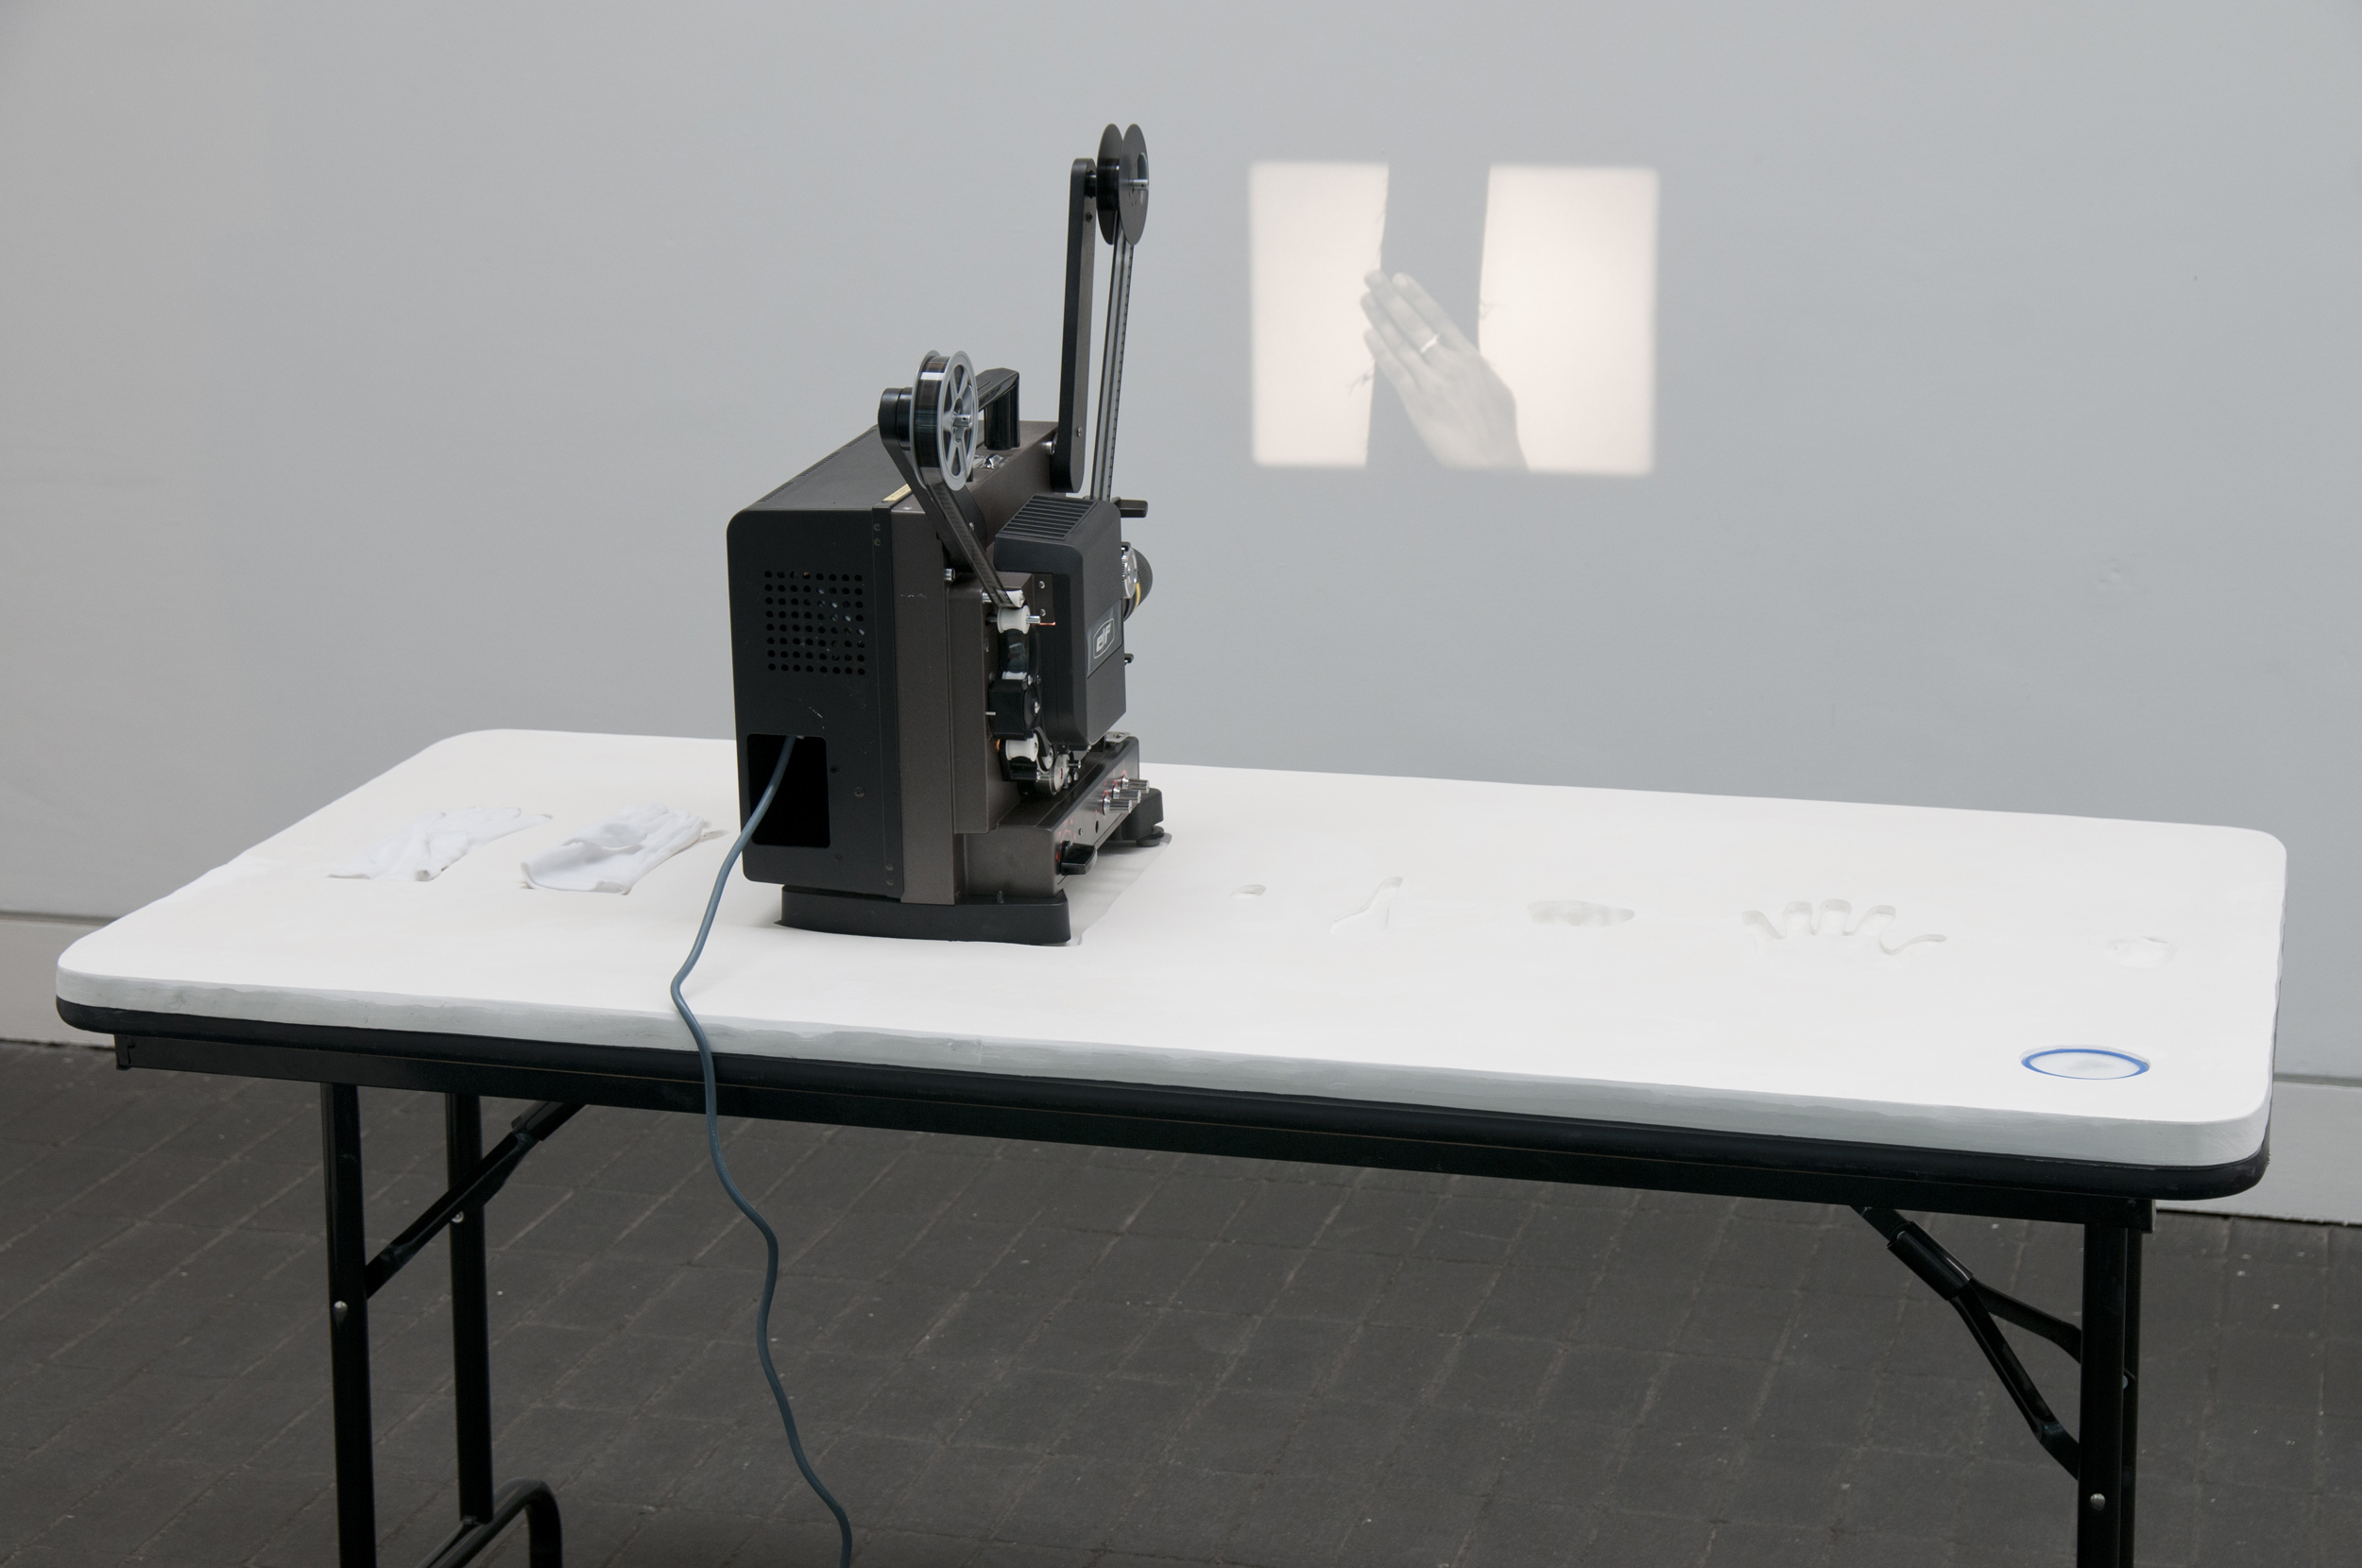 Currency   Performance  16mm film; Plaster table top  Exhibition view Jerwood Space, London  2014  Photo: thisistomorrow.info